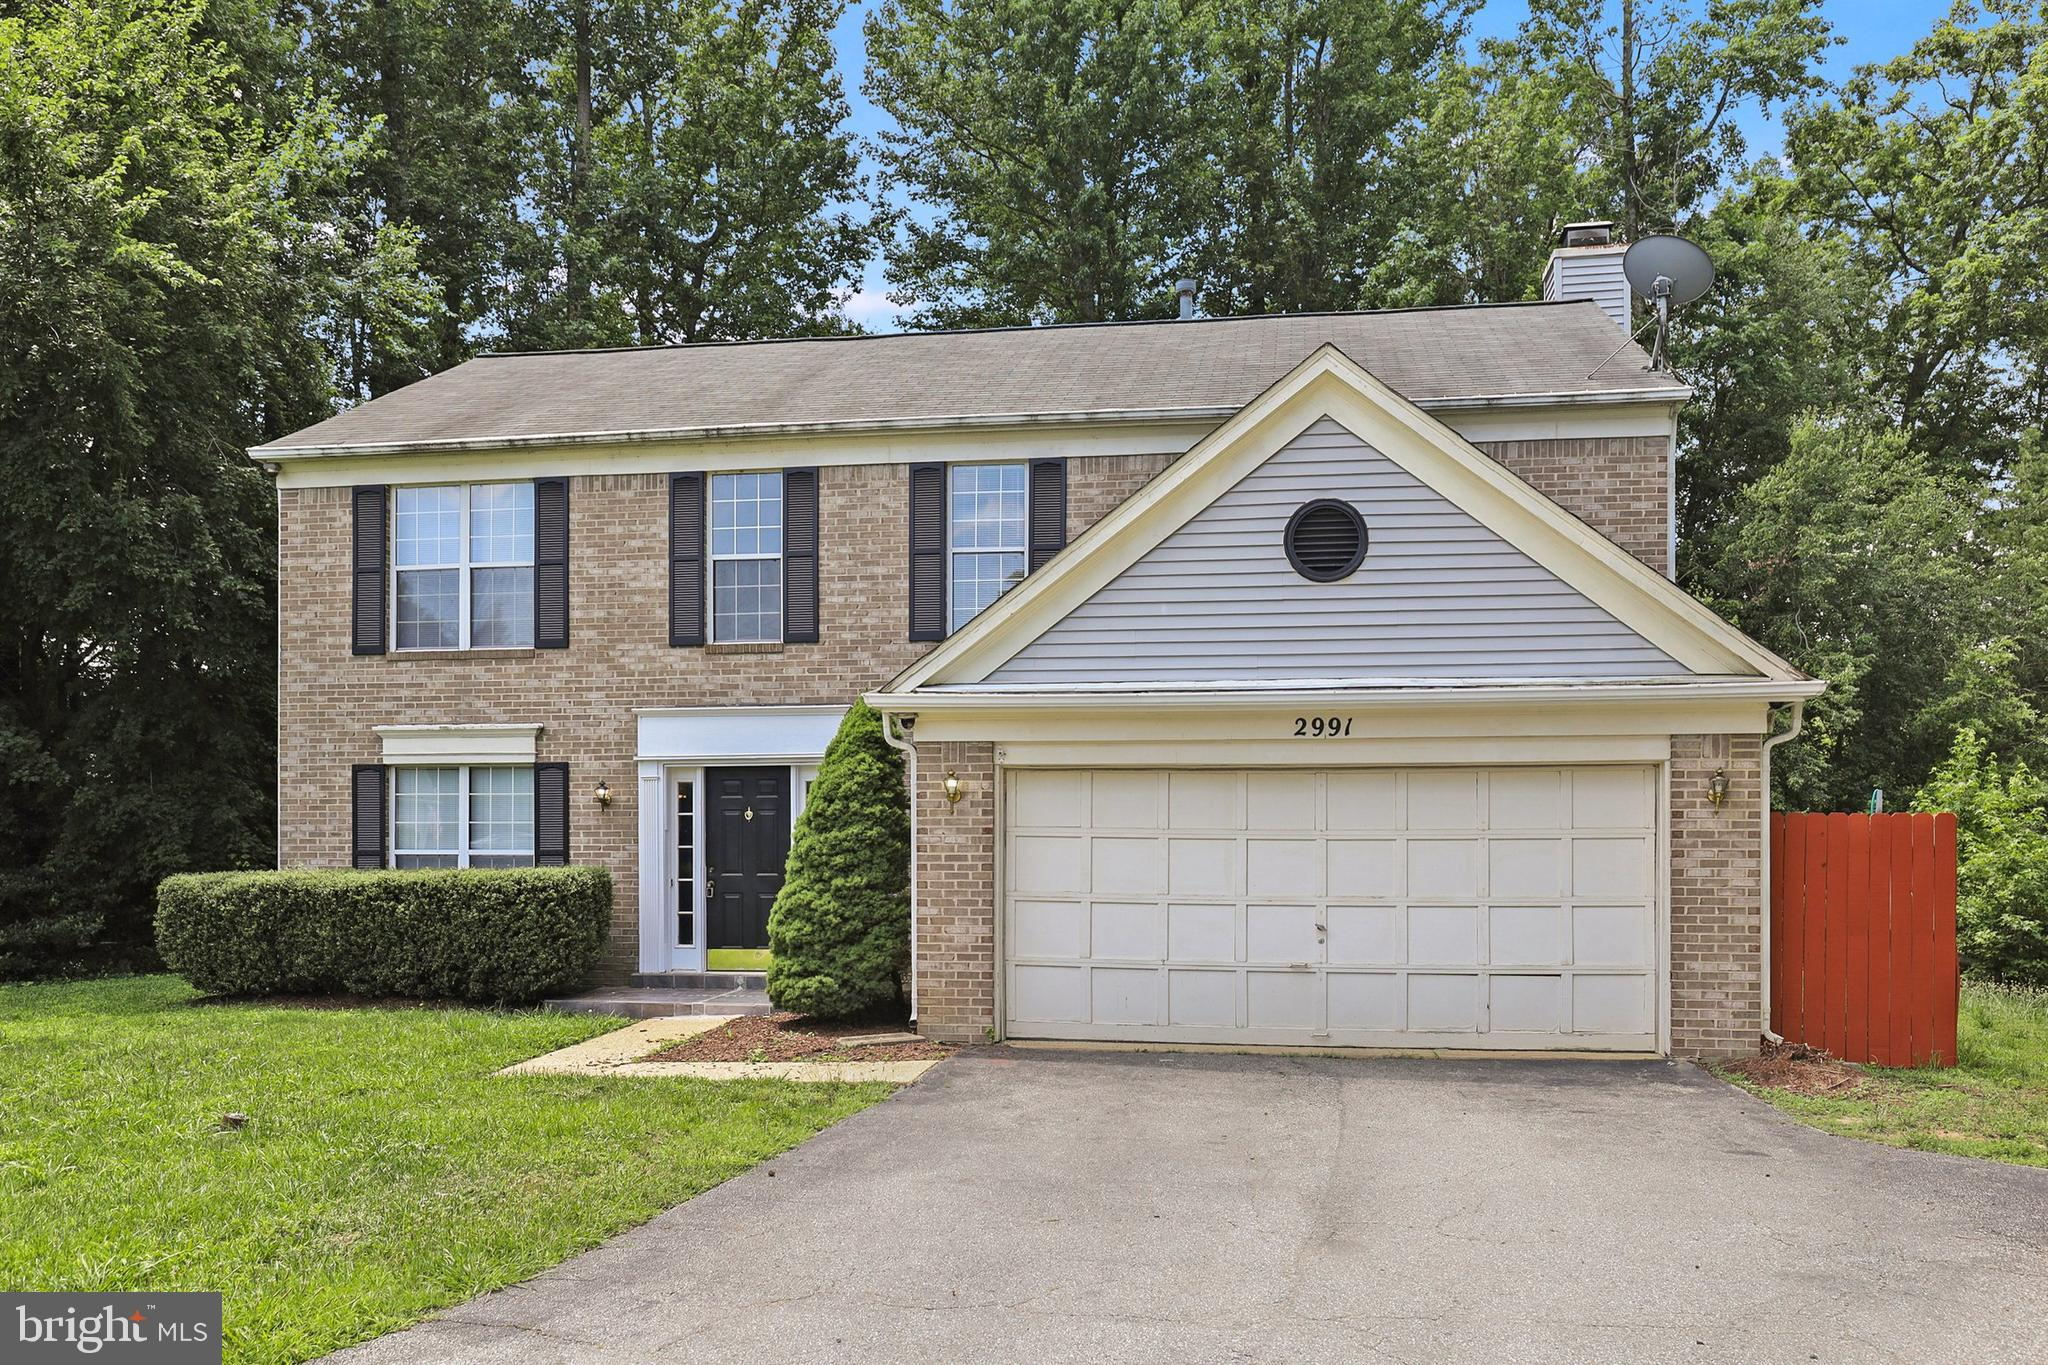 Beautiful home tucked into a quiet back lot in Millbrook subdivision. Home Backs to trees. Very nice